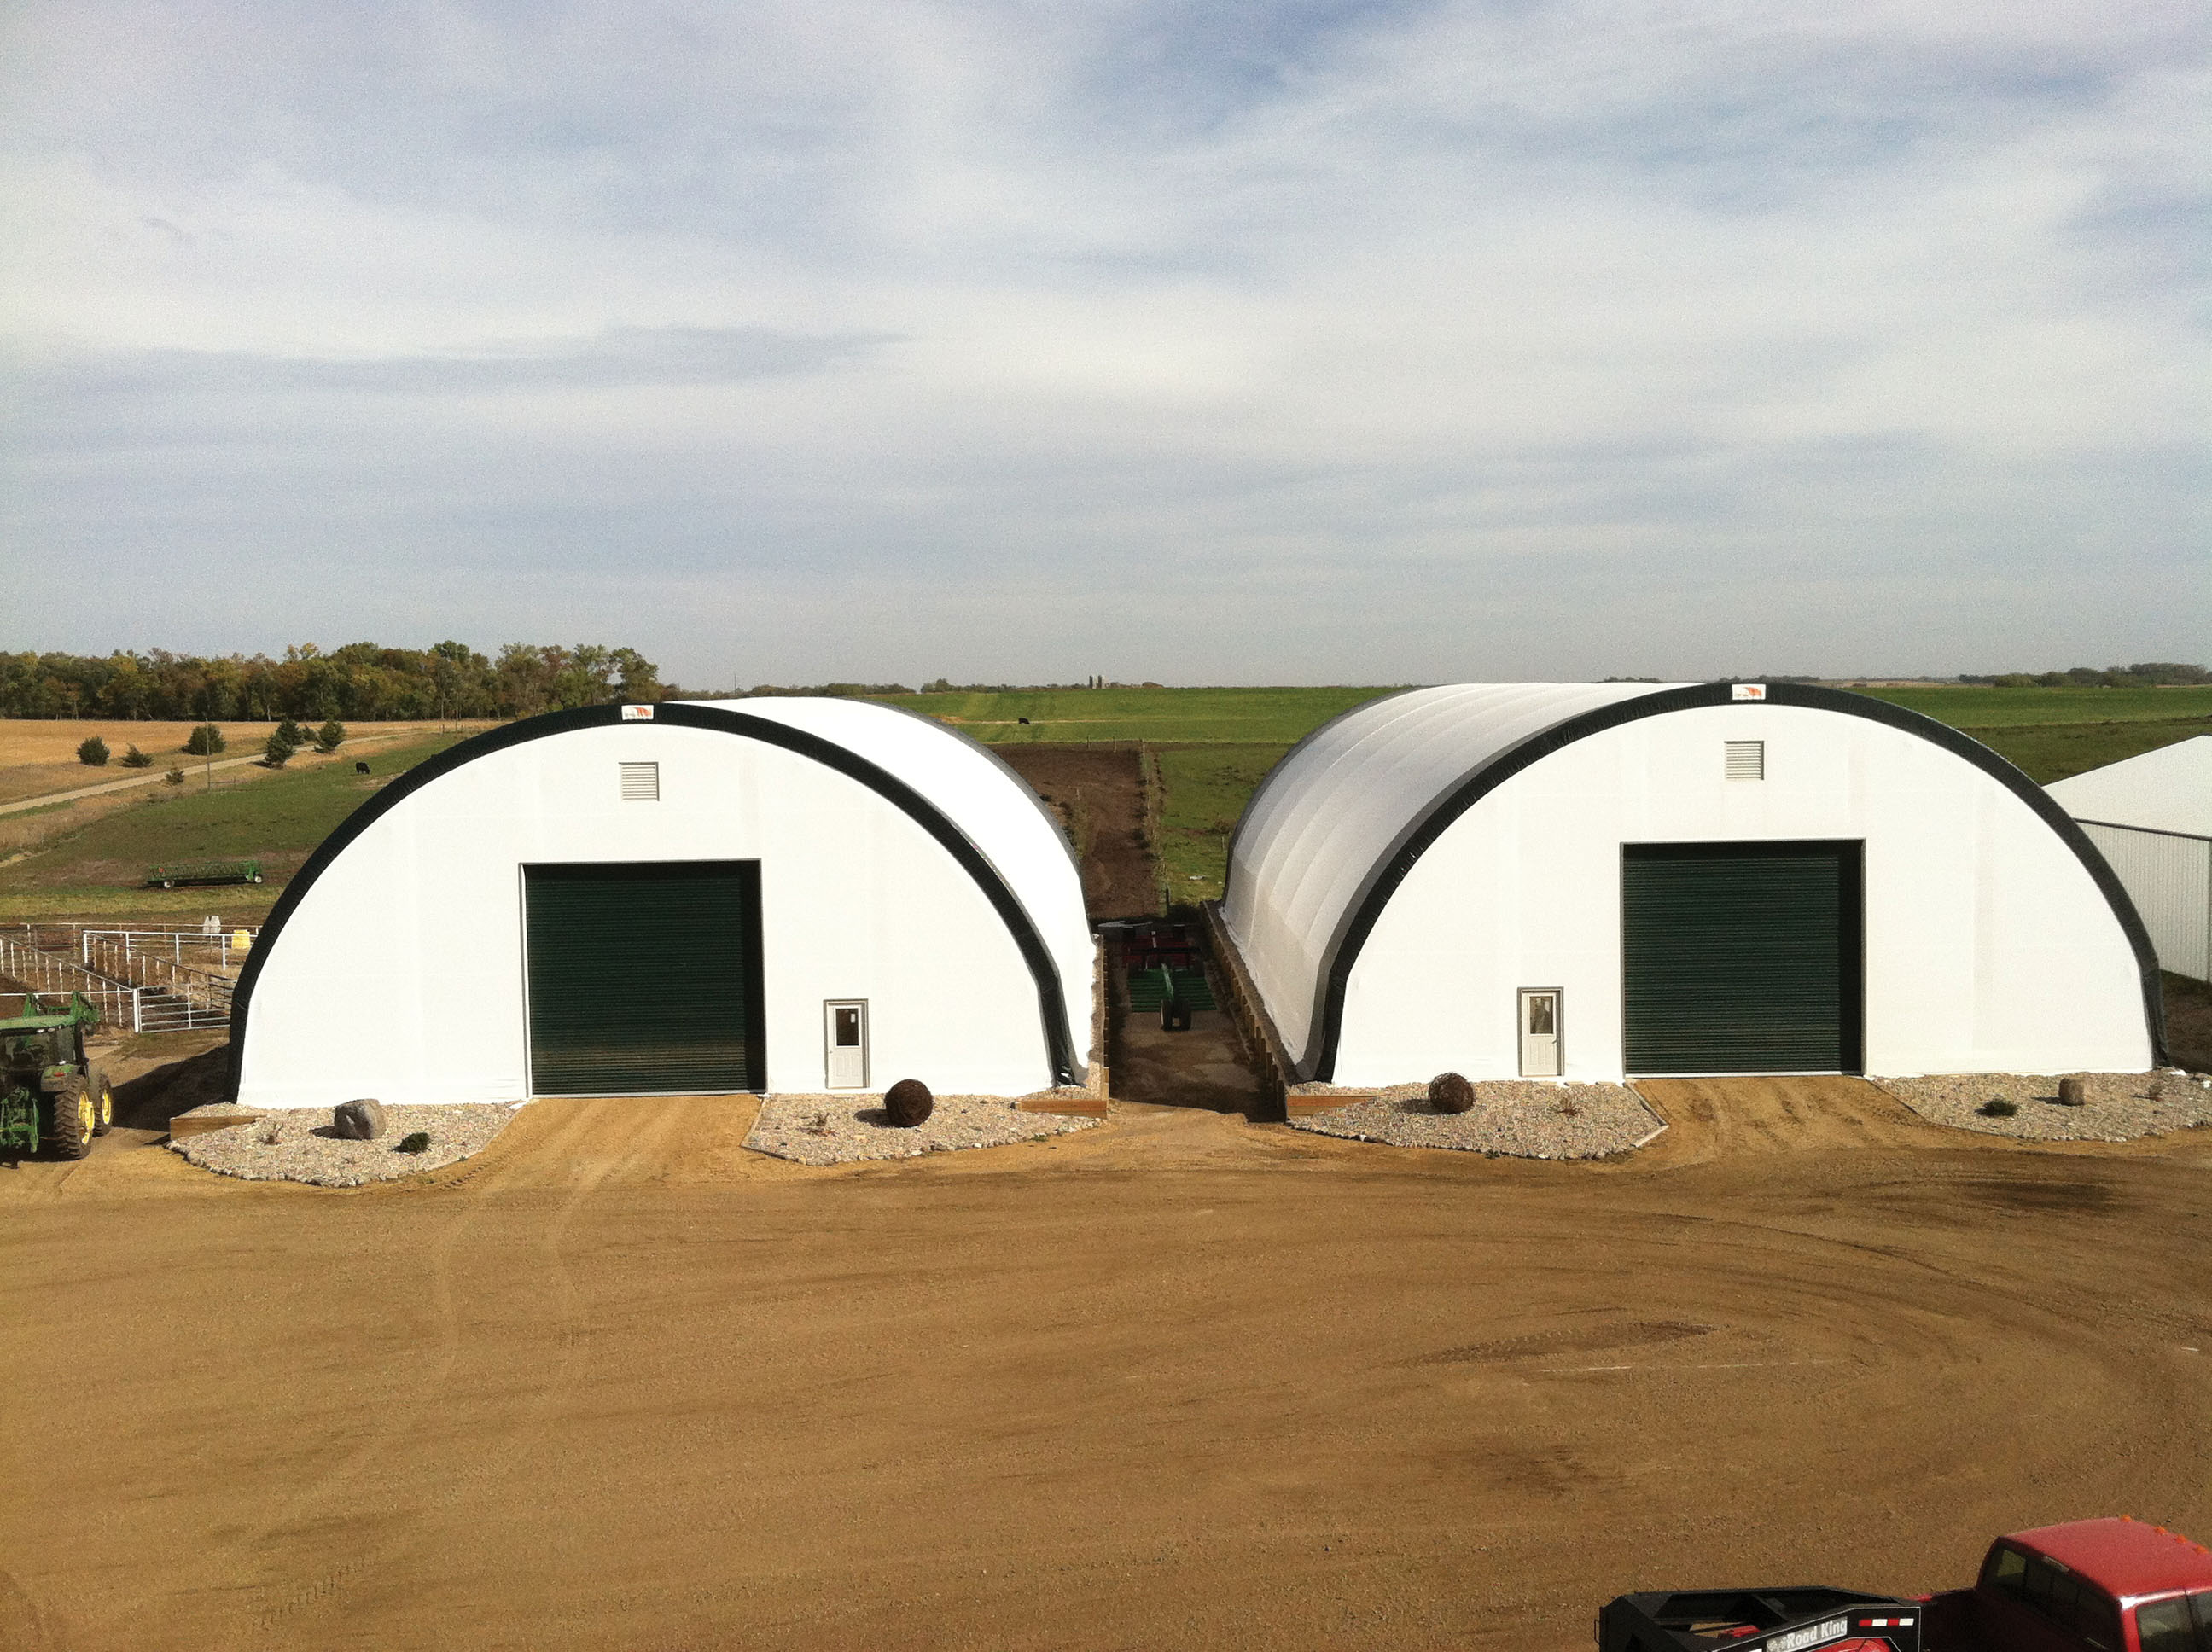 Fabric Carports And Garages : Clearspan building uses fabric structures